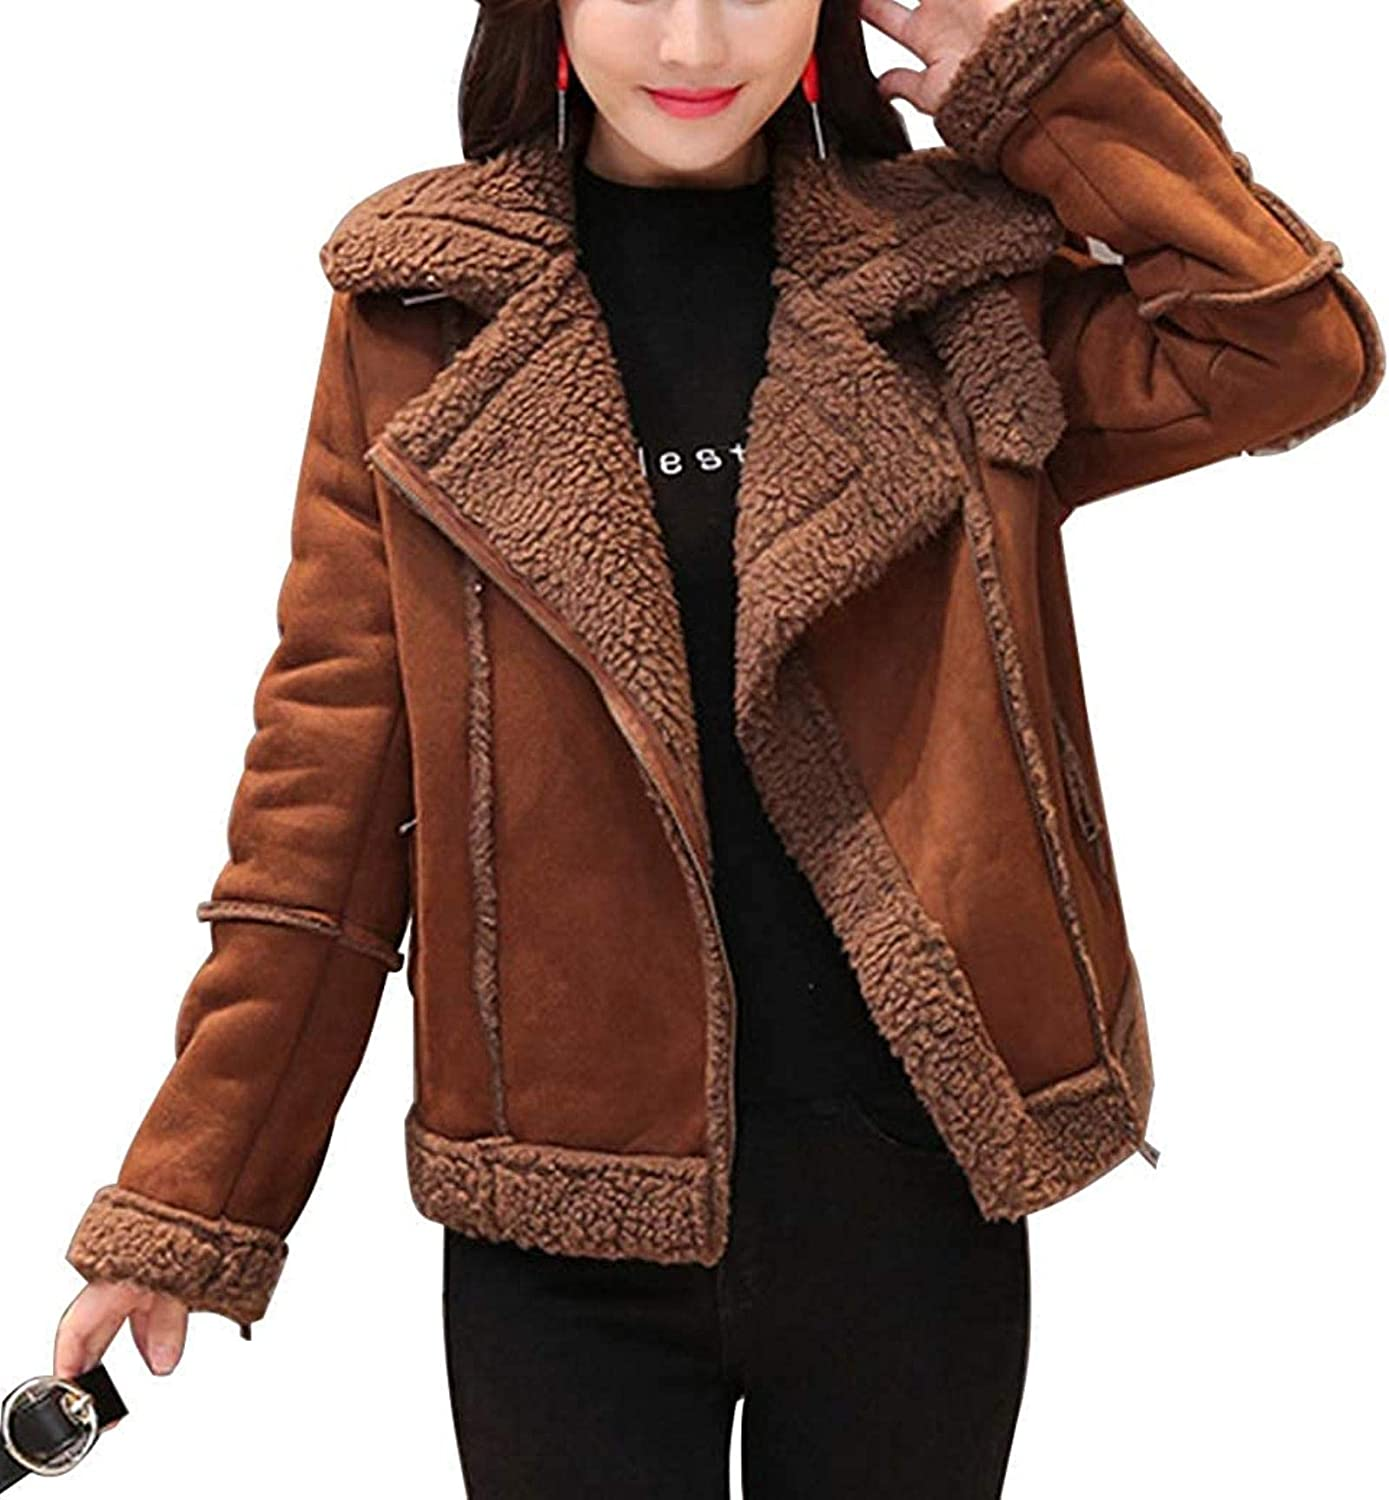 Women's Winter Casual Sherpa Lined Zip Up Moto Suede Leather Jacket